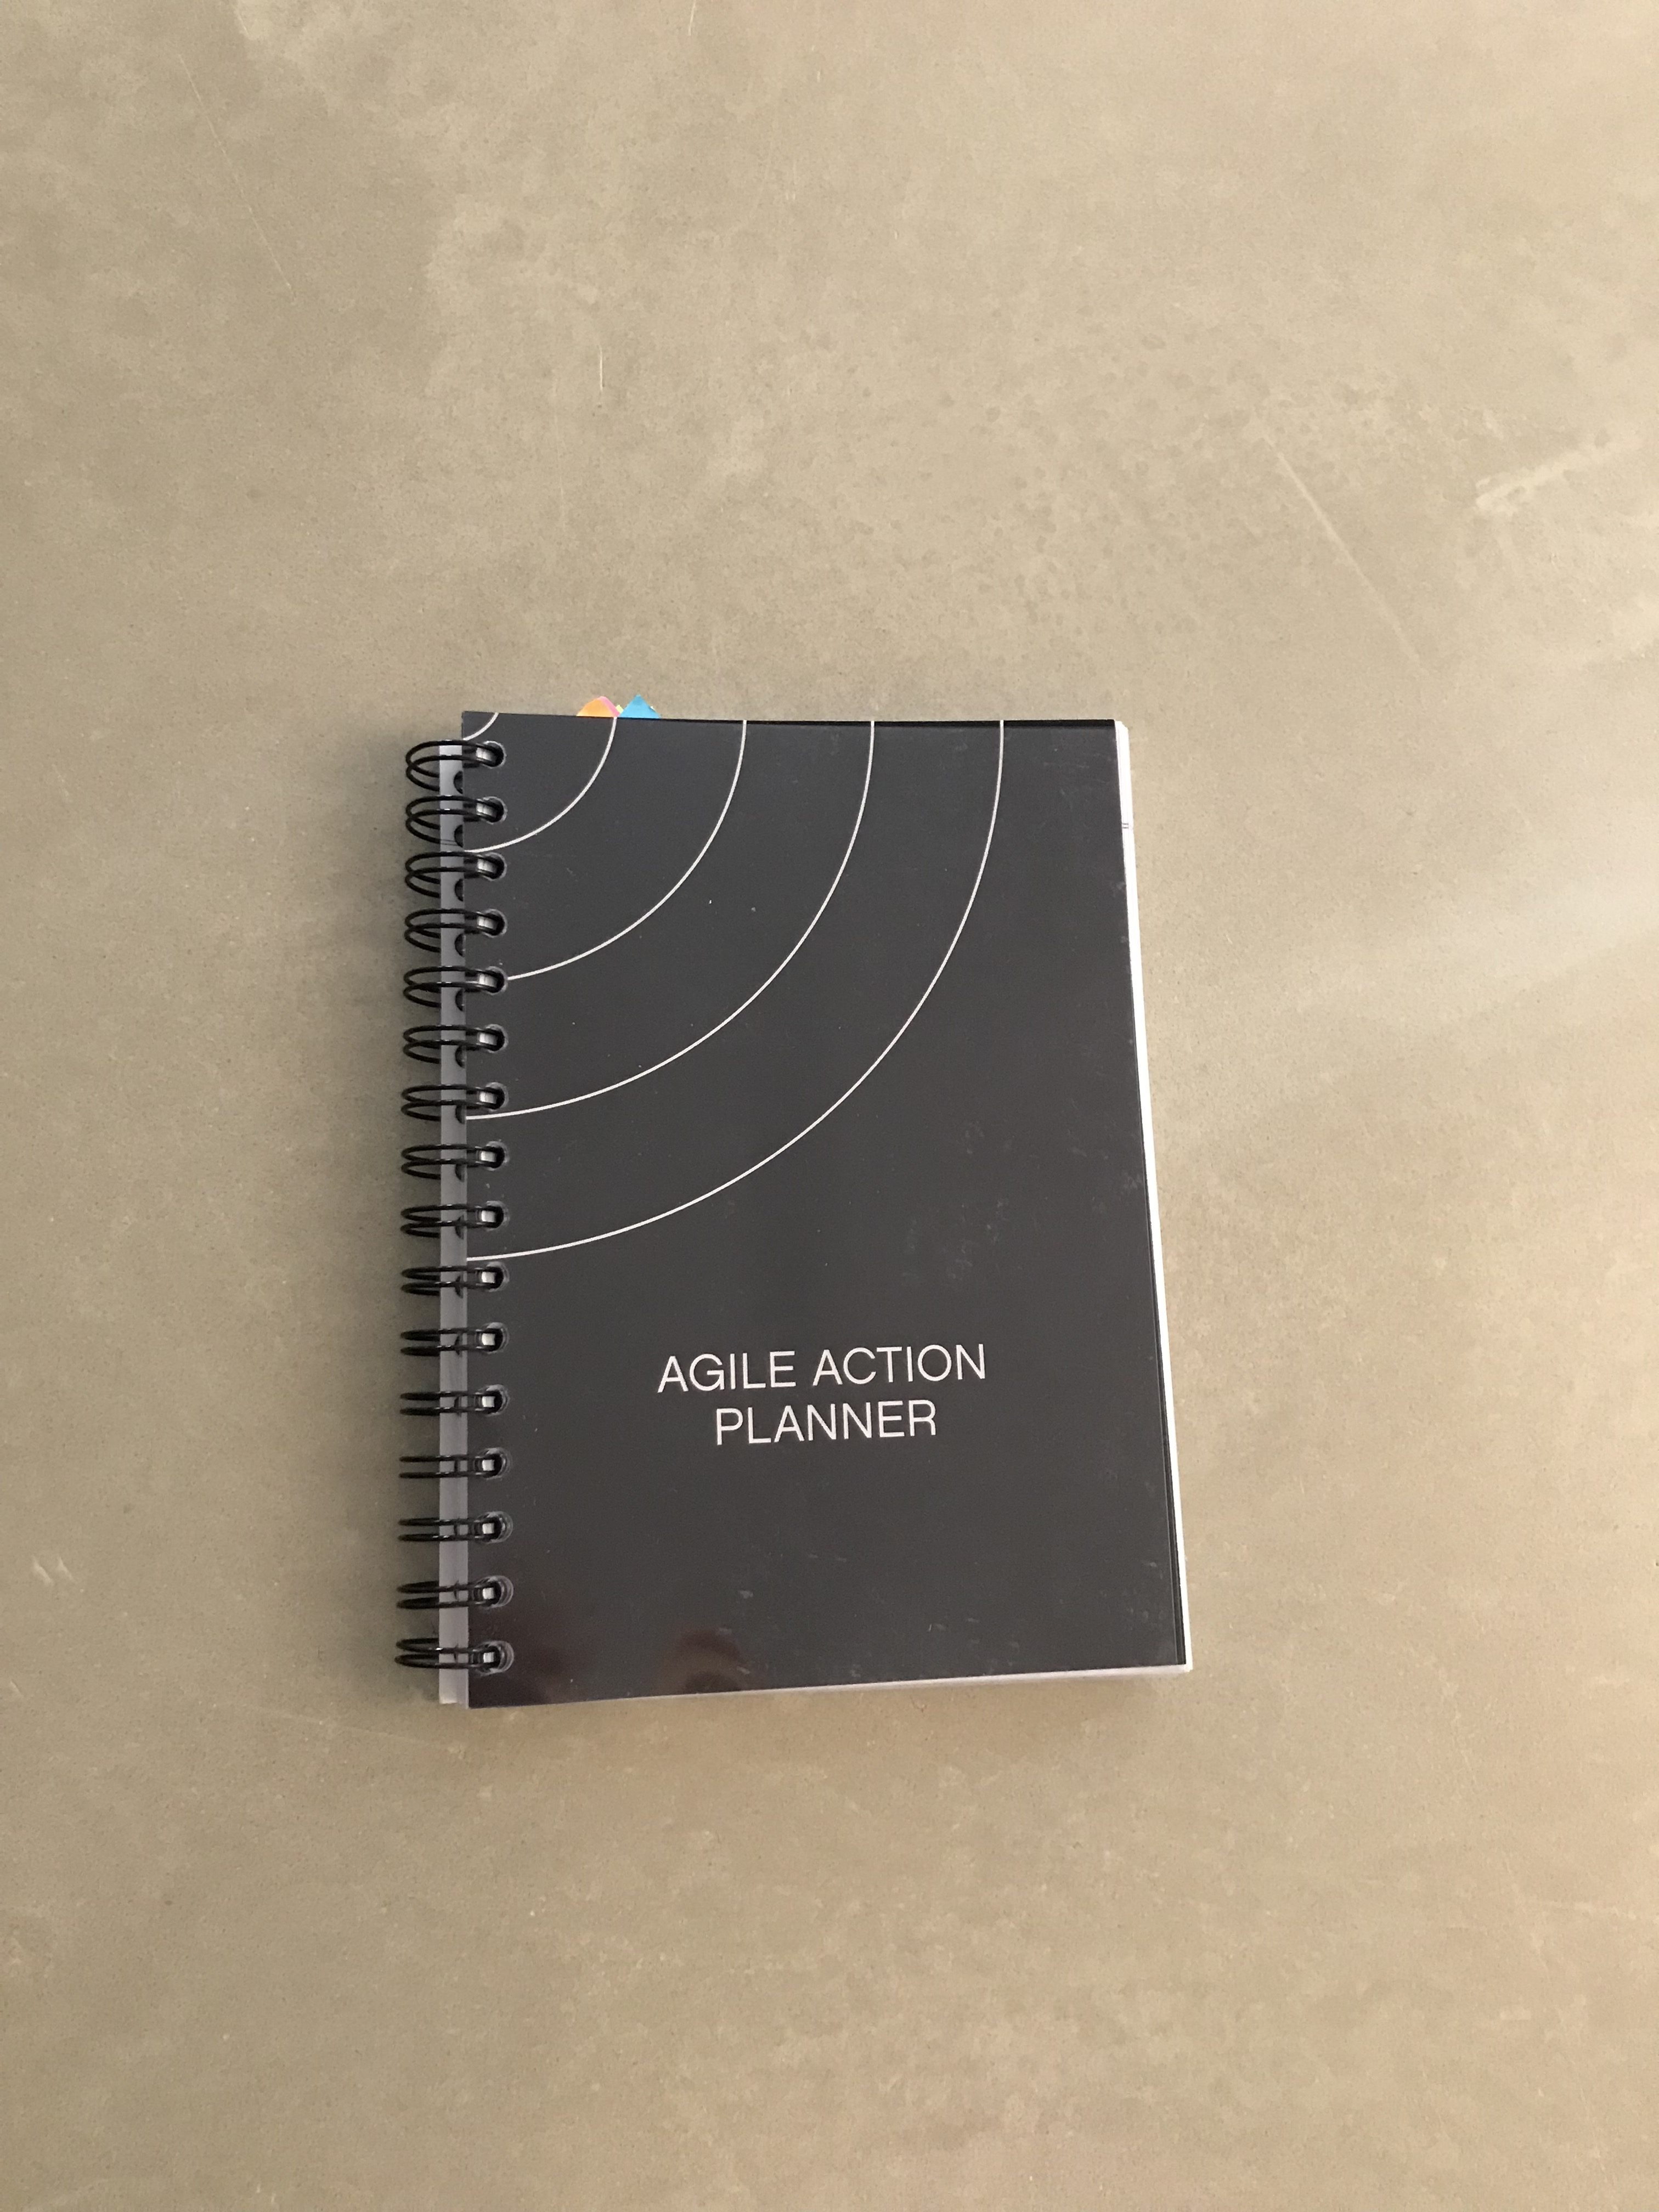 Agile Action Planner